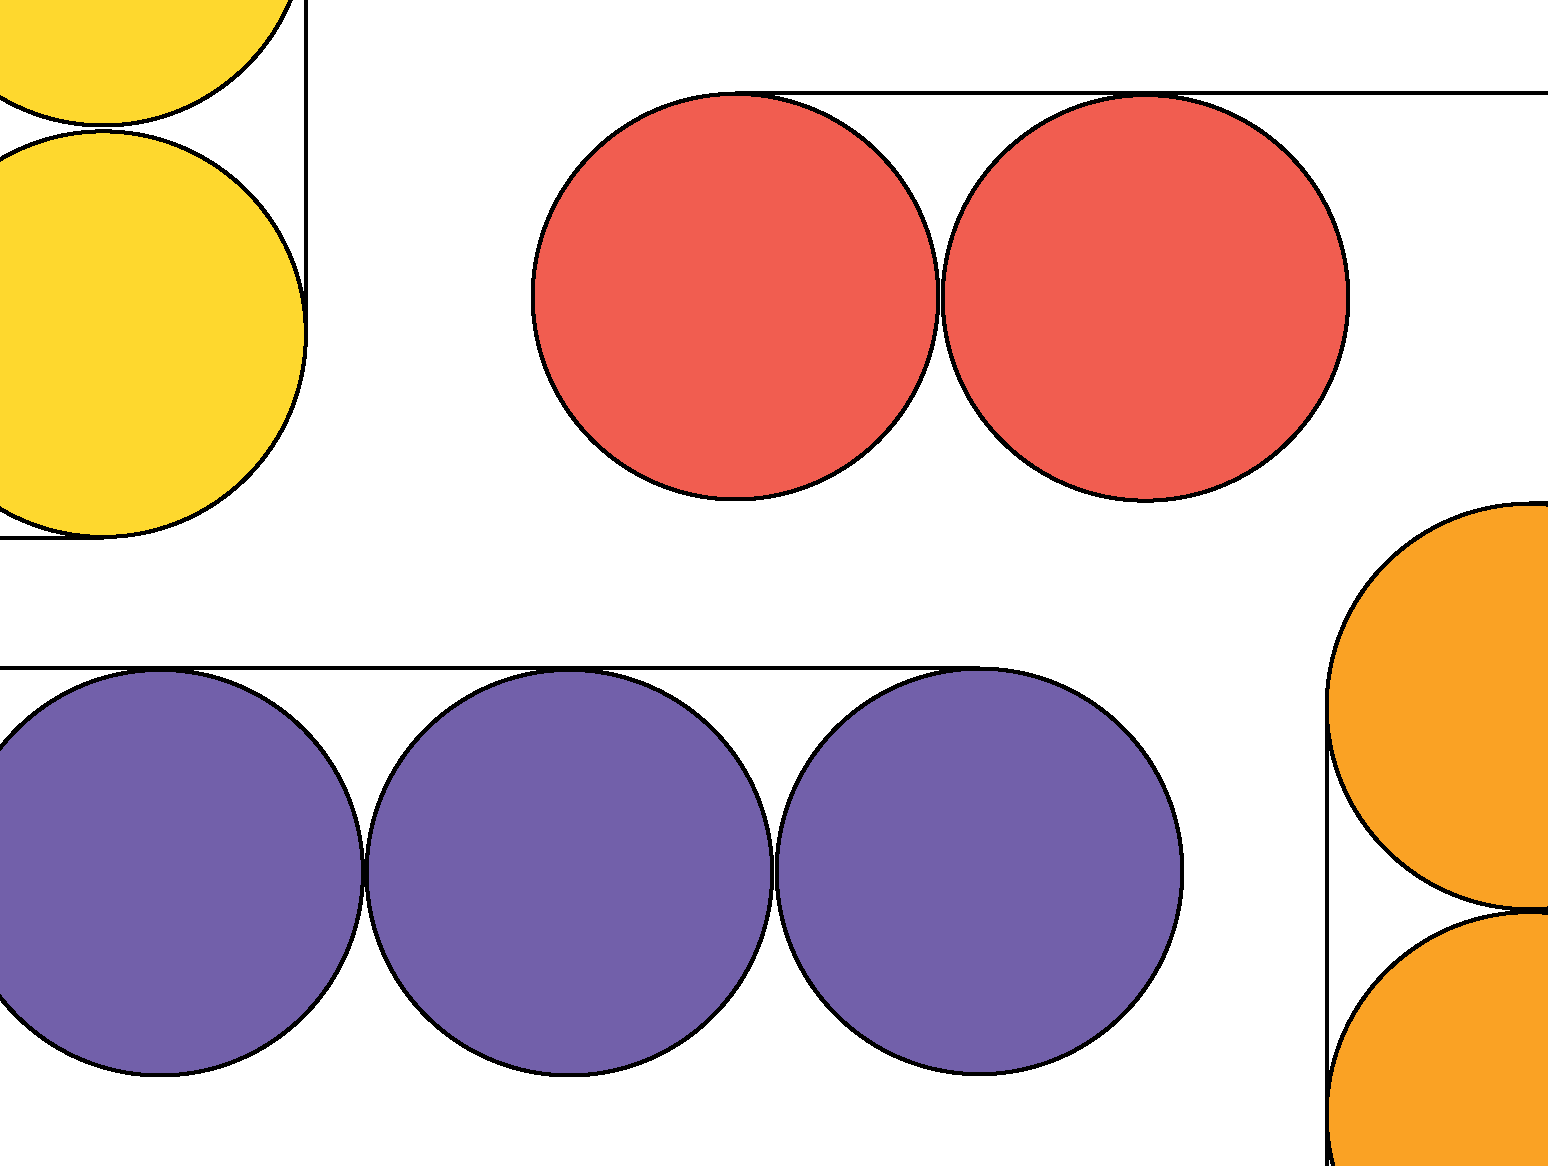 Abstract image of yellow, red, purple, and orange circles connected with thin lines.